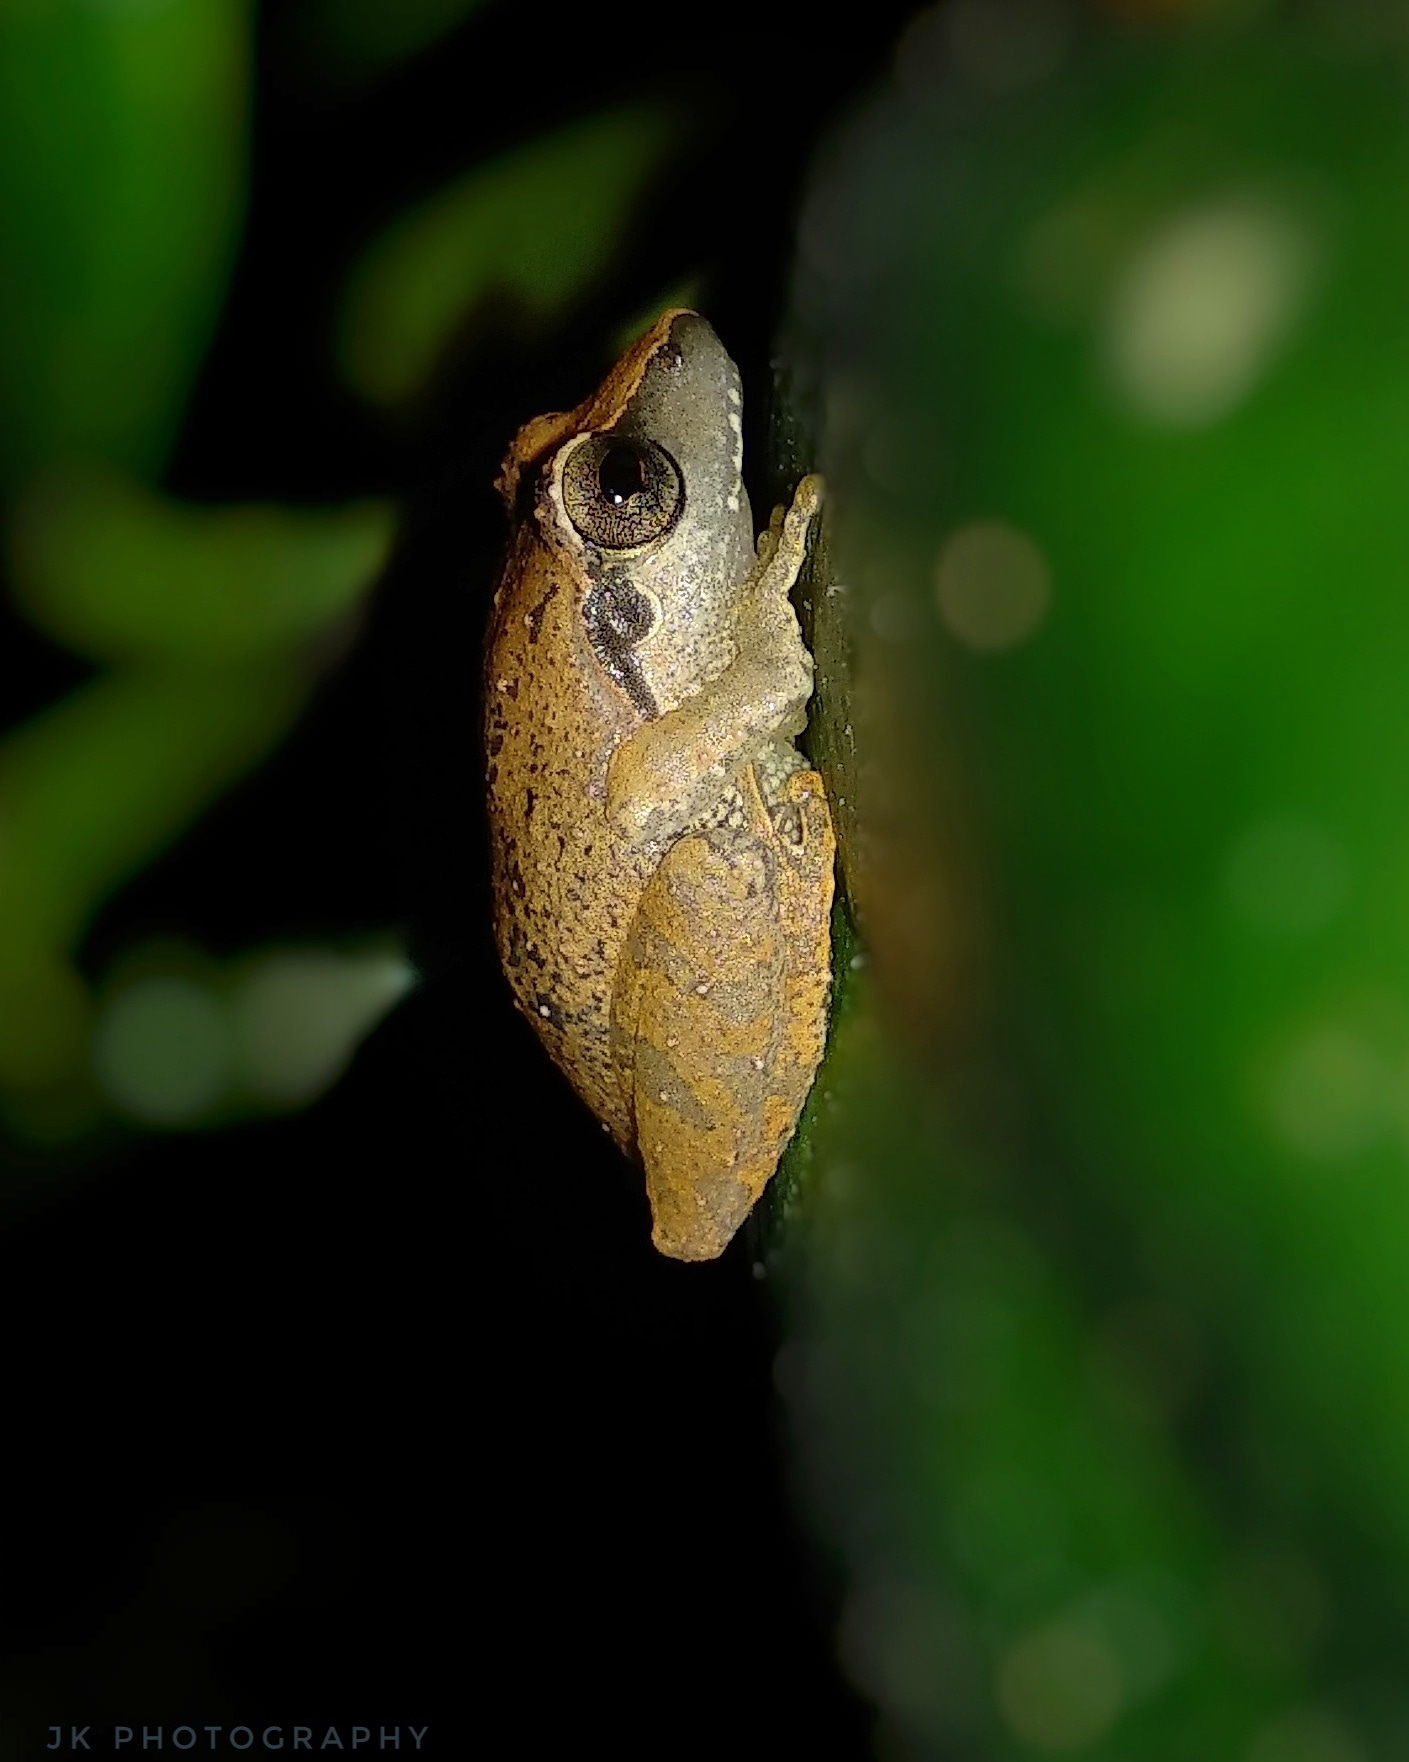 Bush Frog | In the night that I went out for taking pictures, I came to notice a frog that is resting on a leaf. It have spectacular eyes and I took the photograph of the beautiful scene with the help of camera flash.